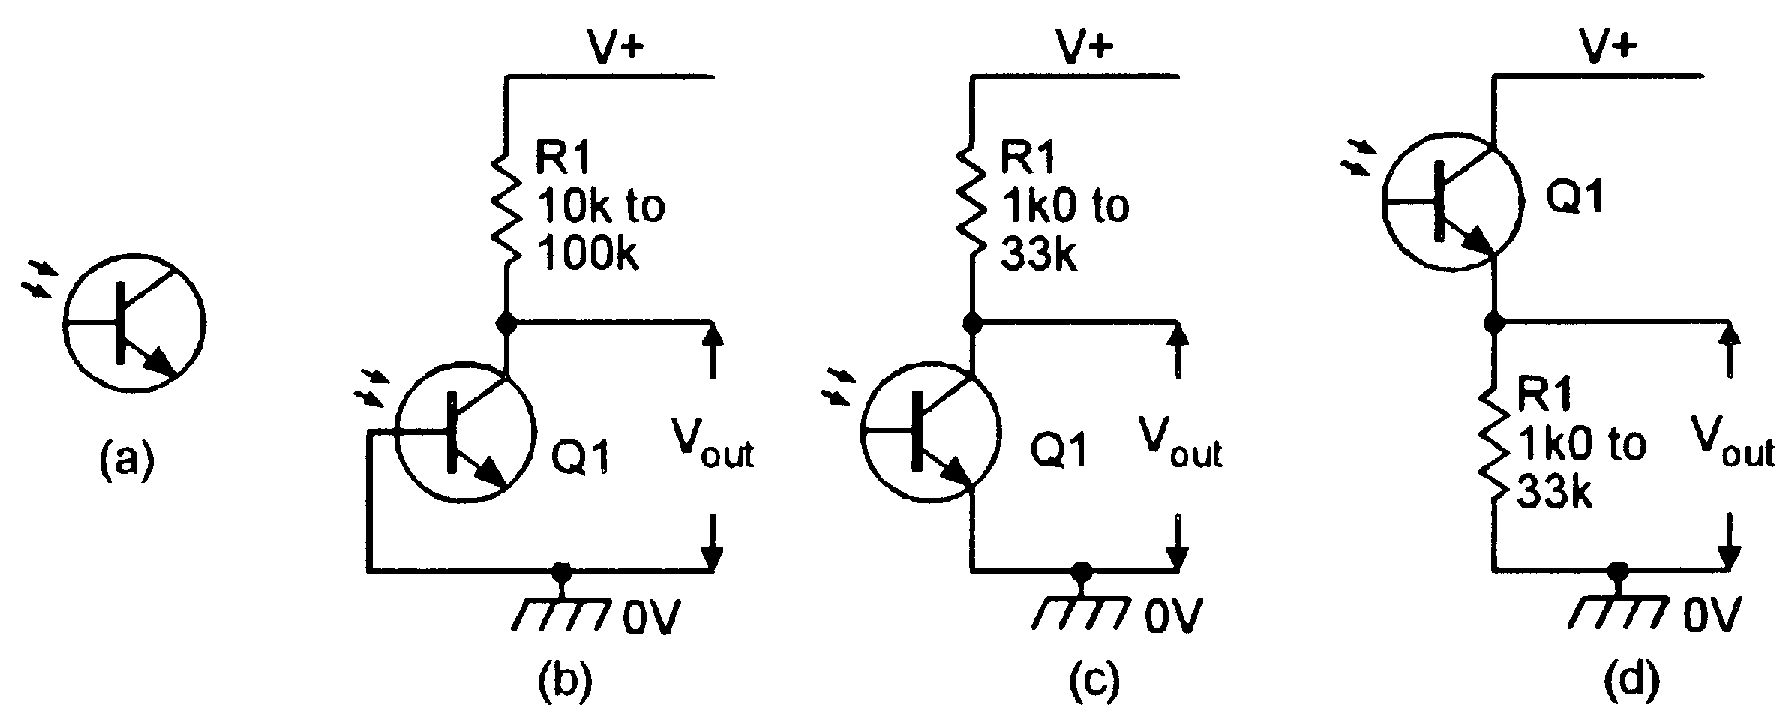 Light Sensitive Circuits Nuts Volts Magazine Model Locomotive Infrared Controller Circuit Electronic Phototransistors